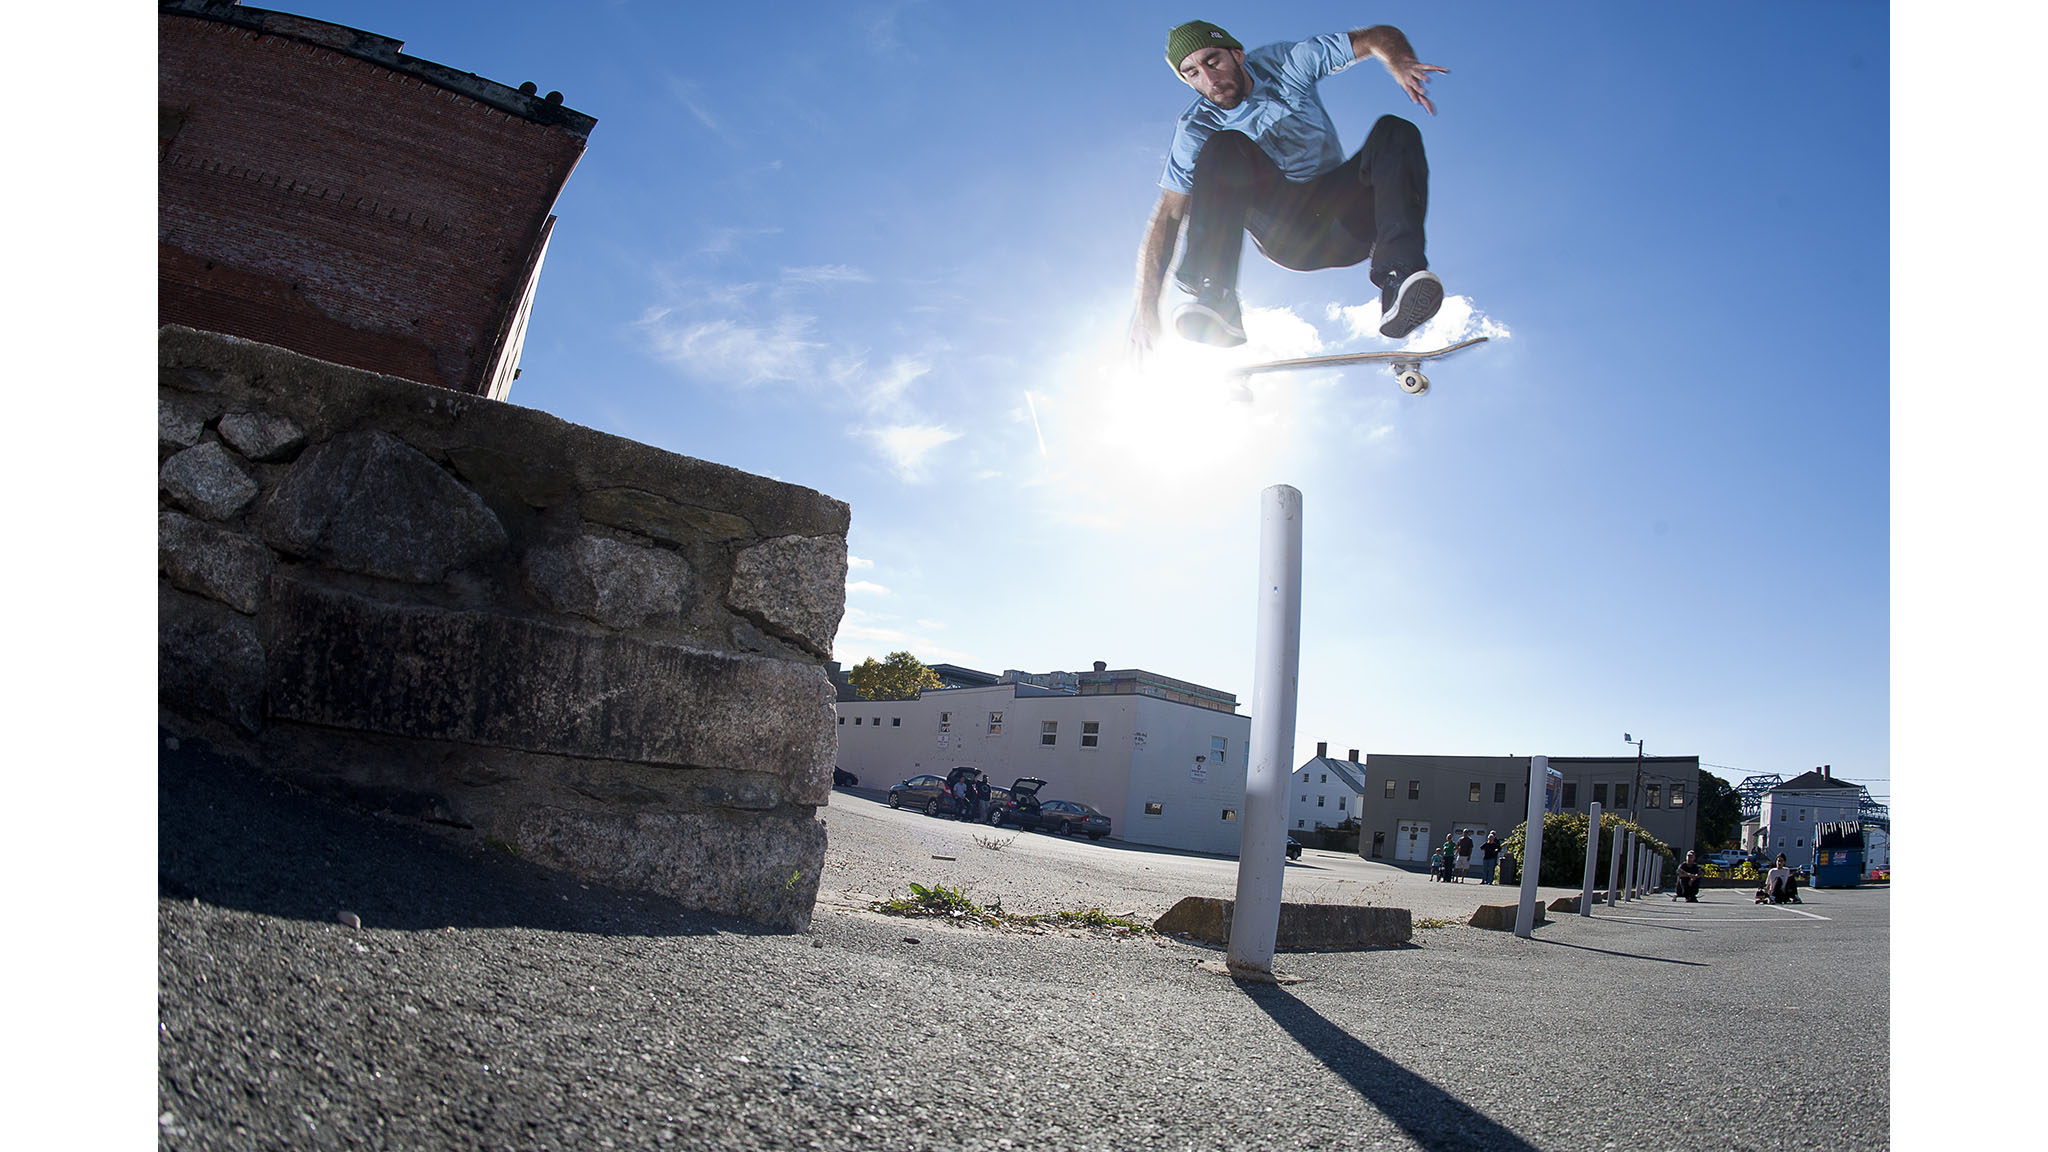 Anthony Shetler, backside kickflip.